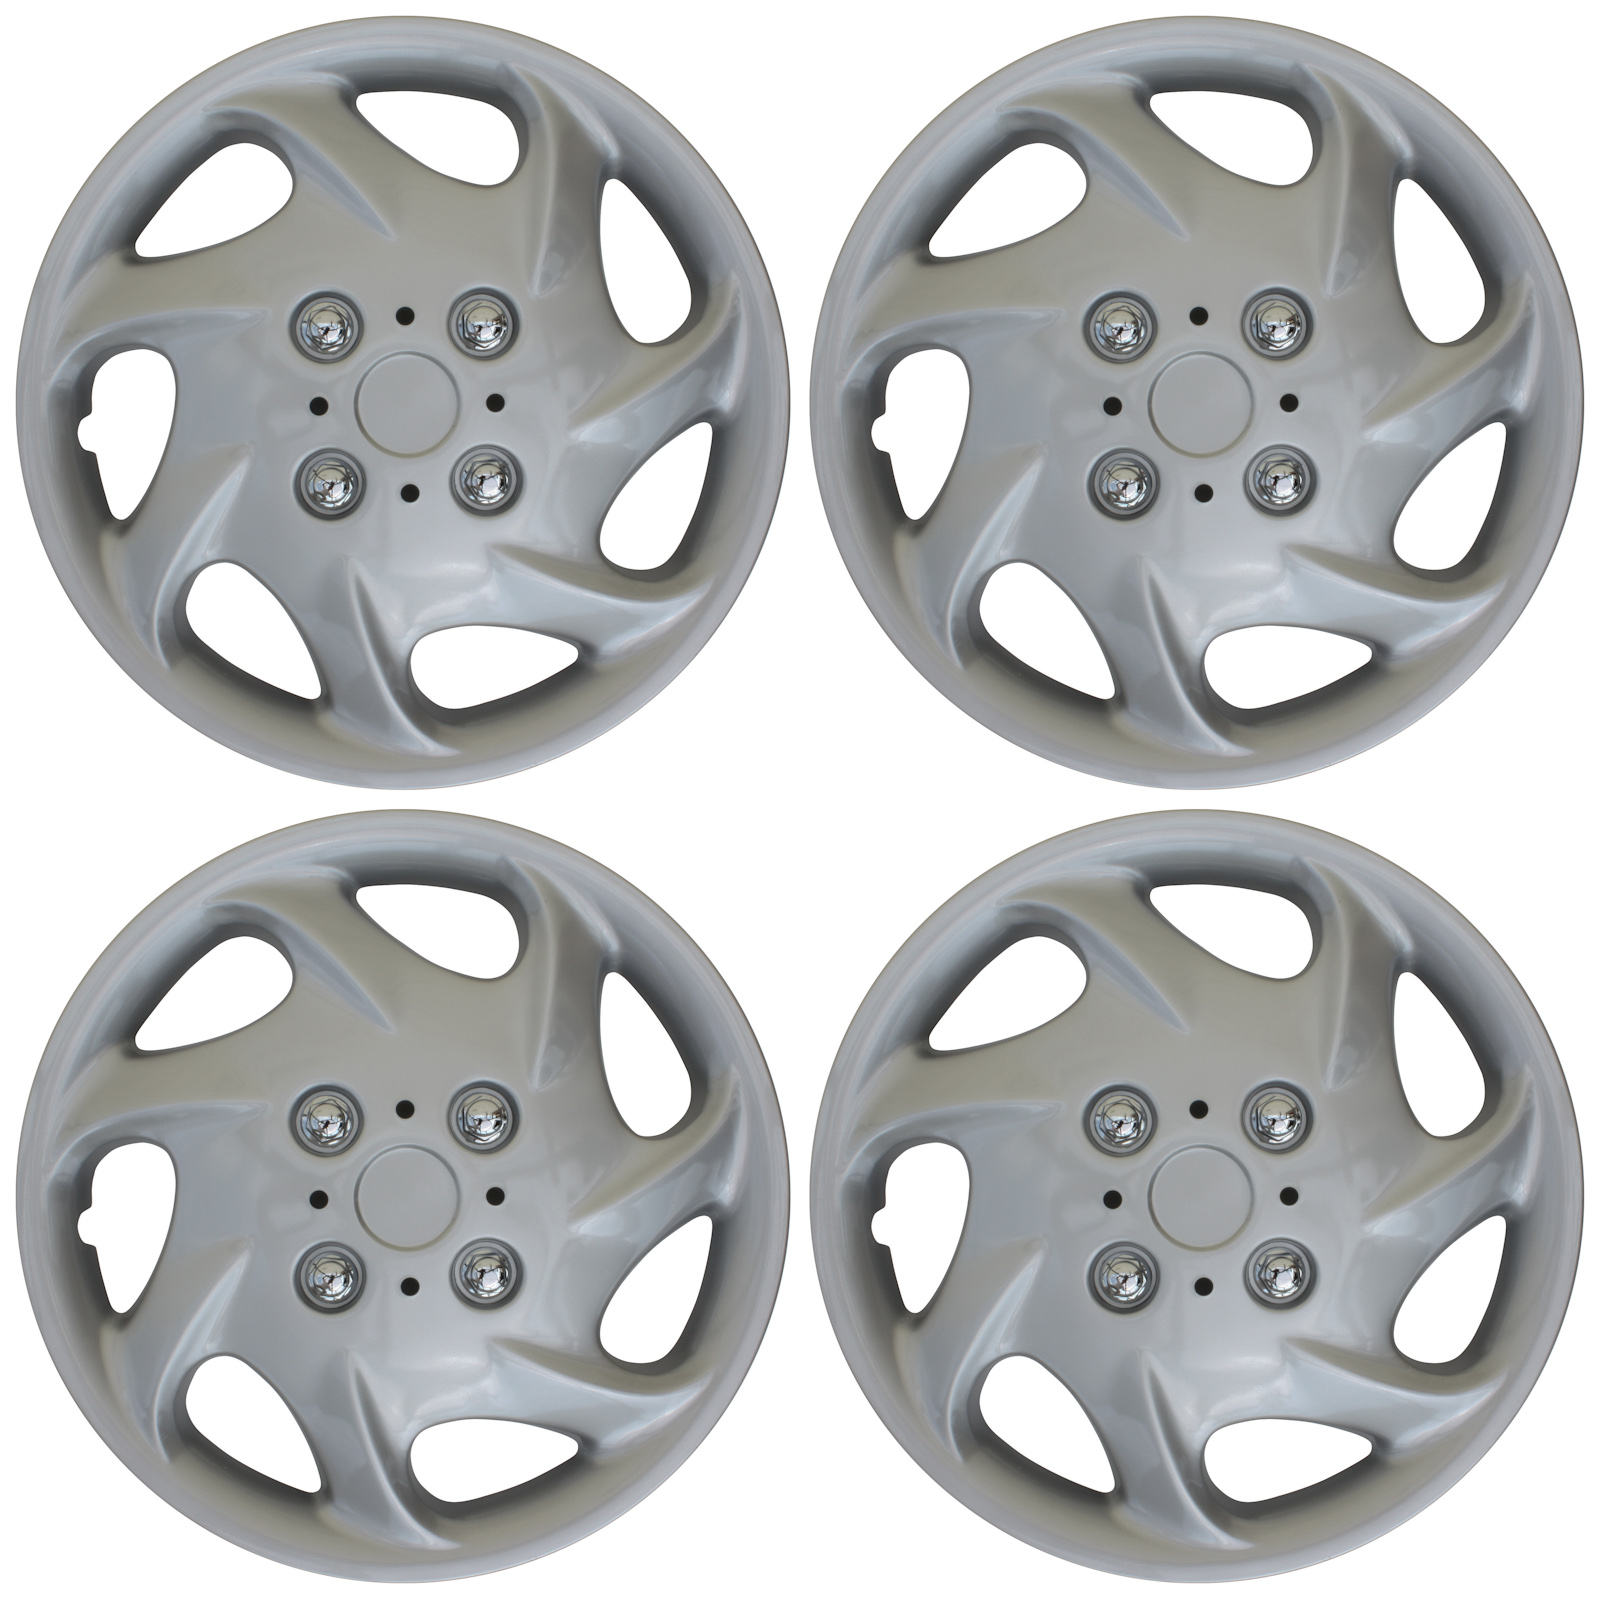 Auto Tire Replacement Exterior Cap 15 inch Hubcaps Best for 2009-2015 Nissan Cube - Snap On Hubcap Wheel Covers 15in Hub Caps Silver Rim Cover Set of 4 Car Accessories for 15 inch Wheels